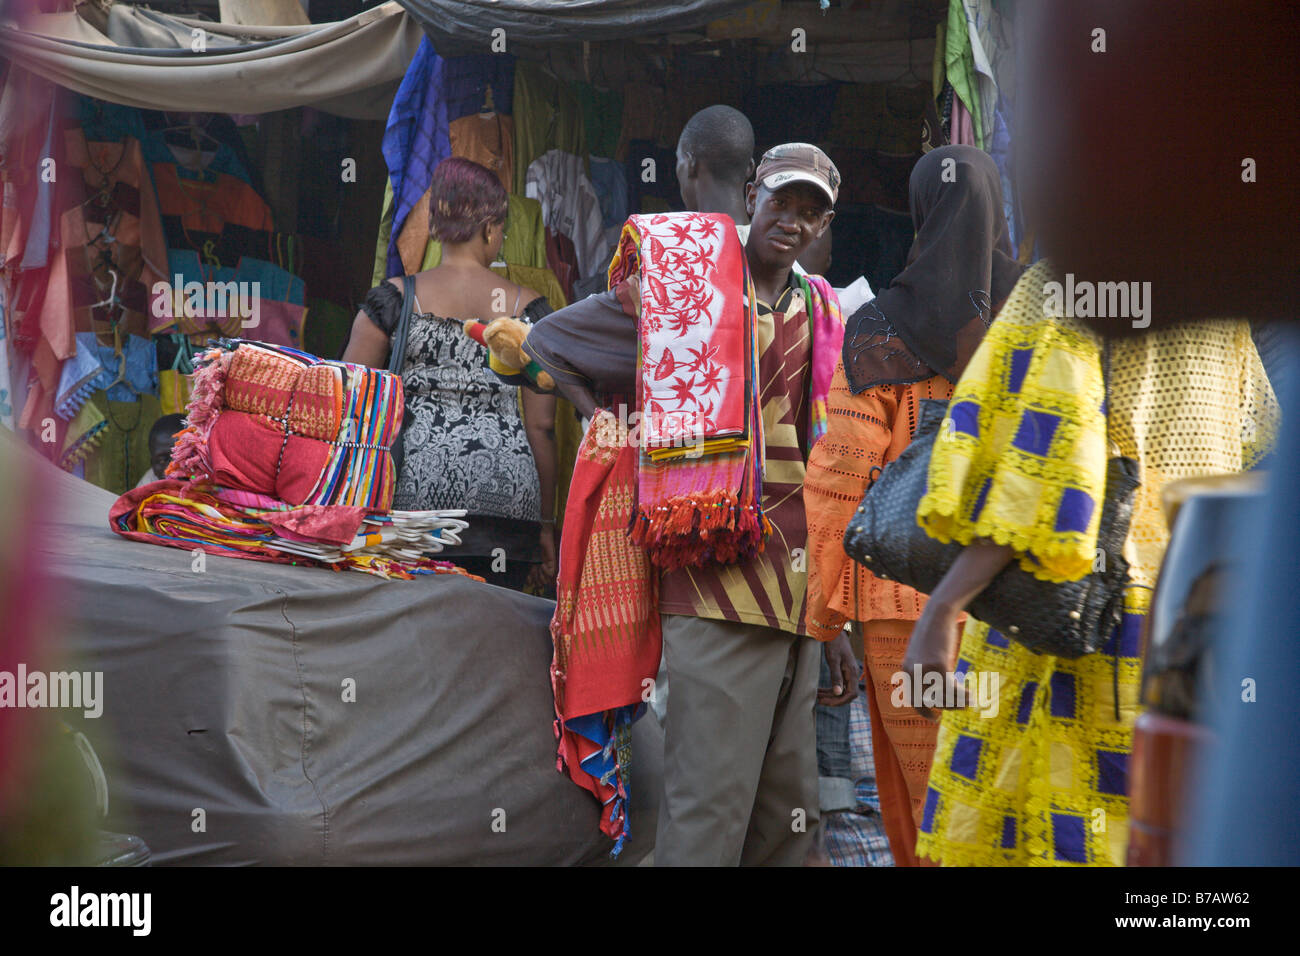 The HLM Market in Dakar, Senegal sells all kinds of colorful cloths.  Many of the vendors come here from Guinea. - Stock Image